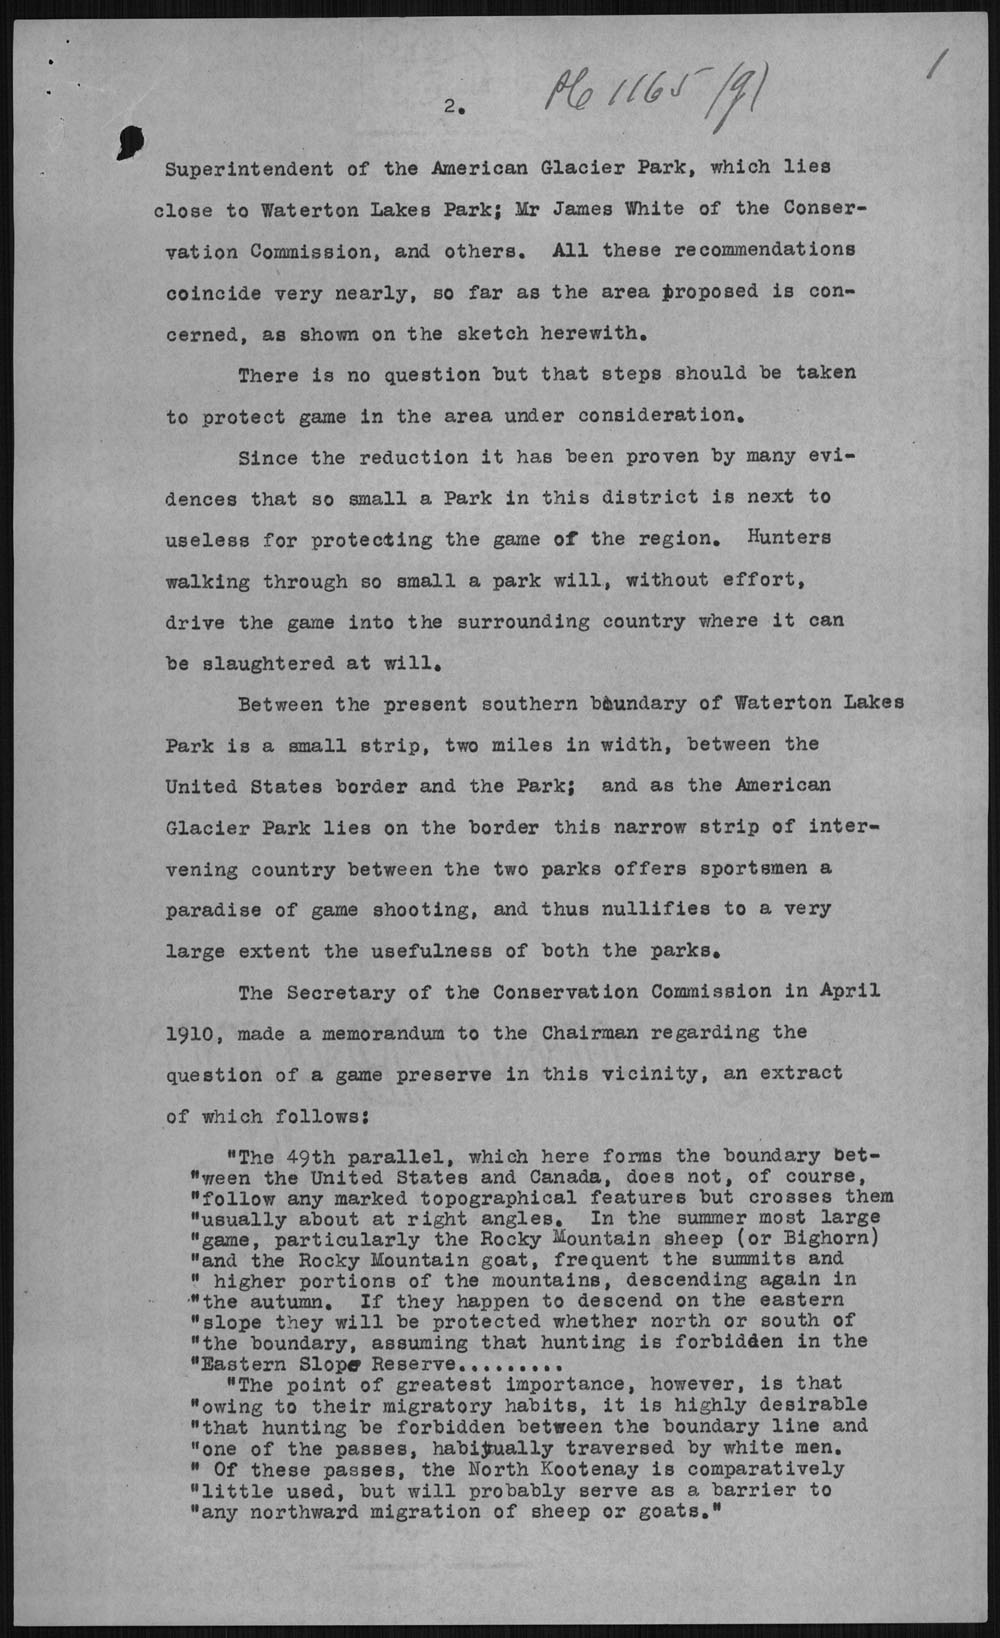 Digitized page of Orders in Council for Image No.: e010877255-v8